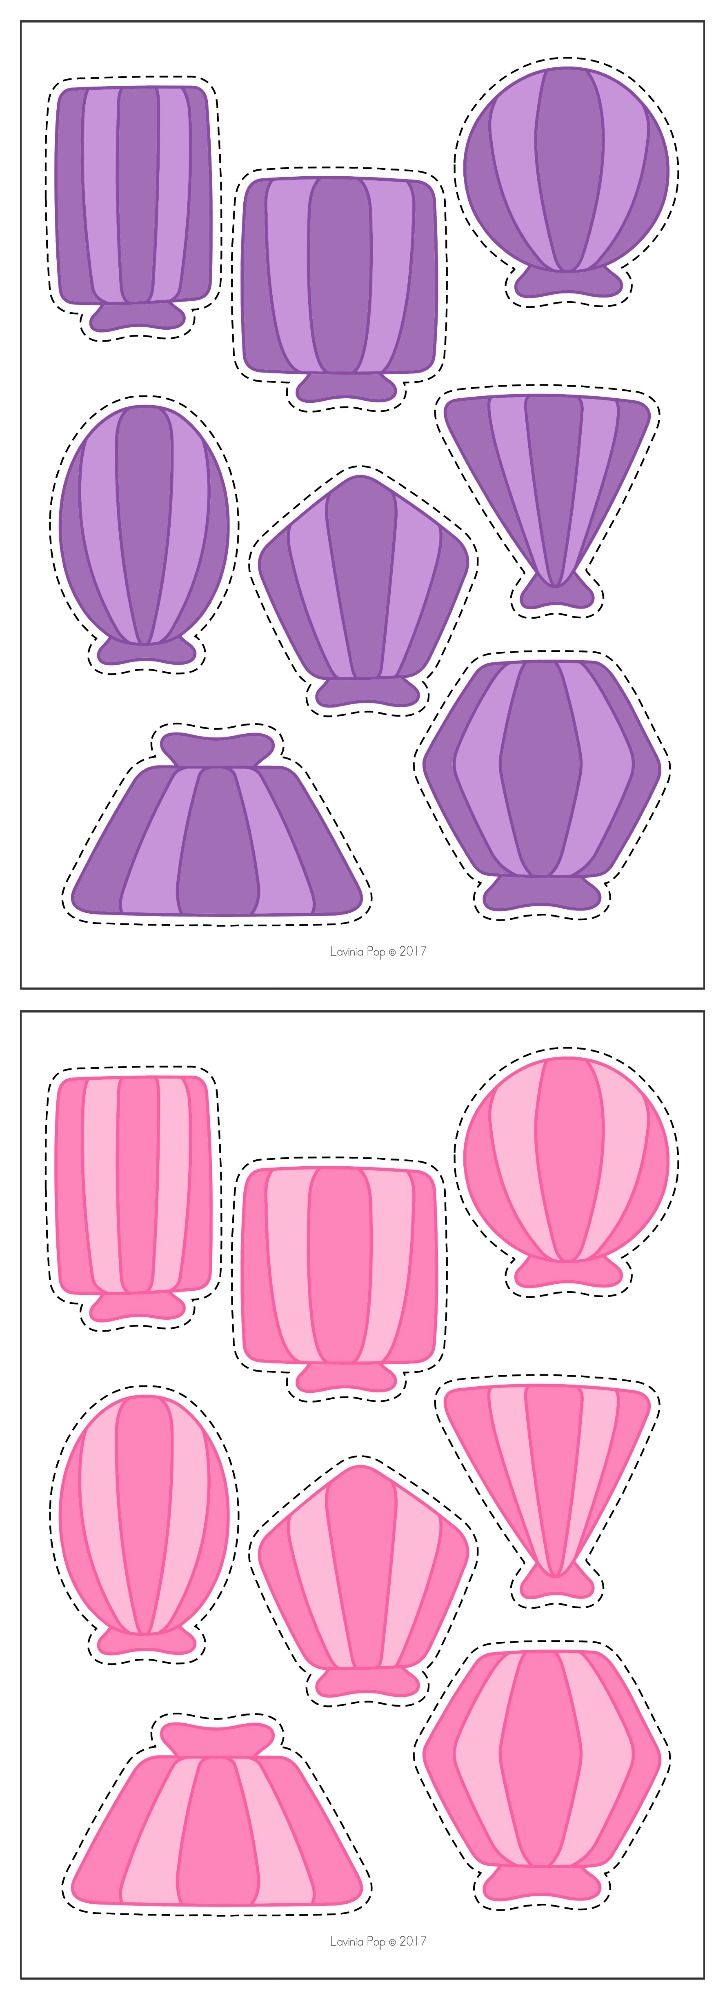 6 Different Types Of Artificial Nails You Can Try: Best 25+ Different Shapes Ideas On Pinterest